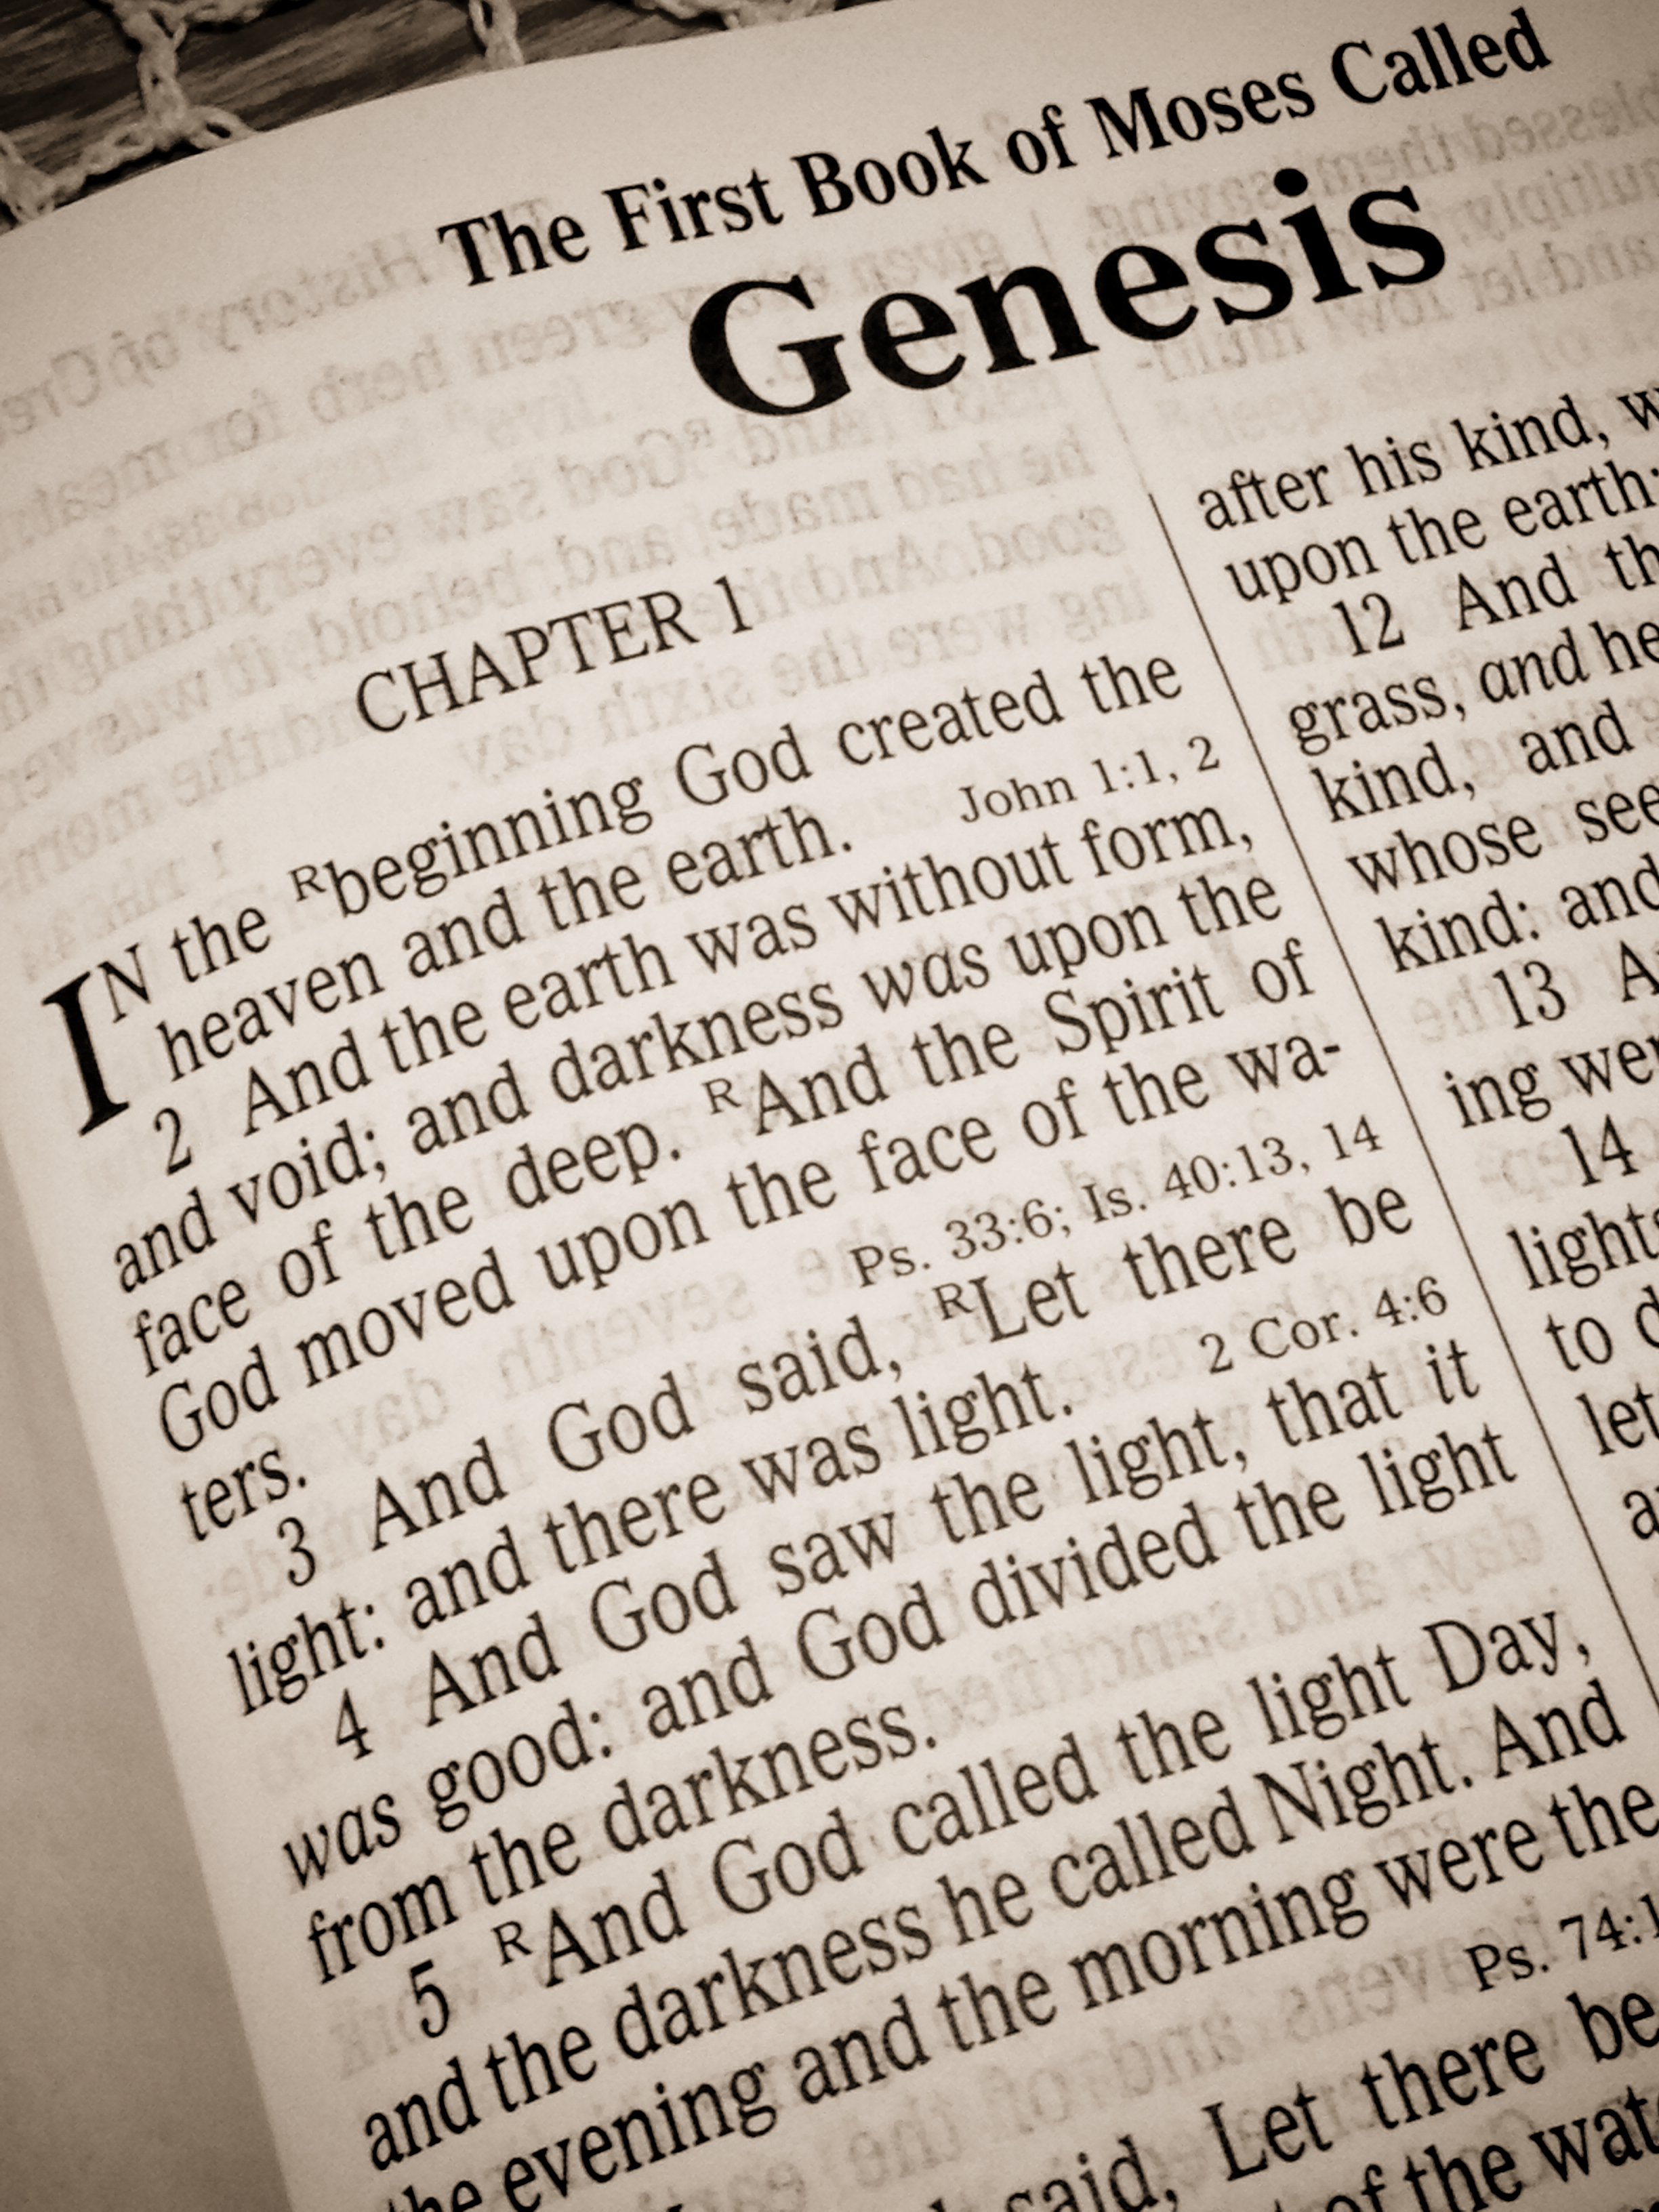 File:The Book of Genesis.jpg - Wikimedia Commons: commons.wikimedia.org/wiki/file:the_book_of_genesis.jpg